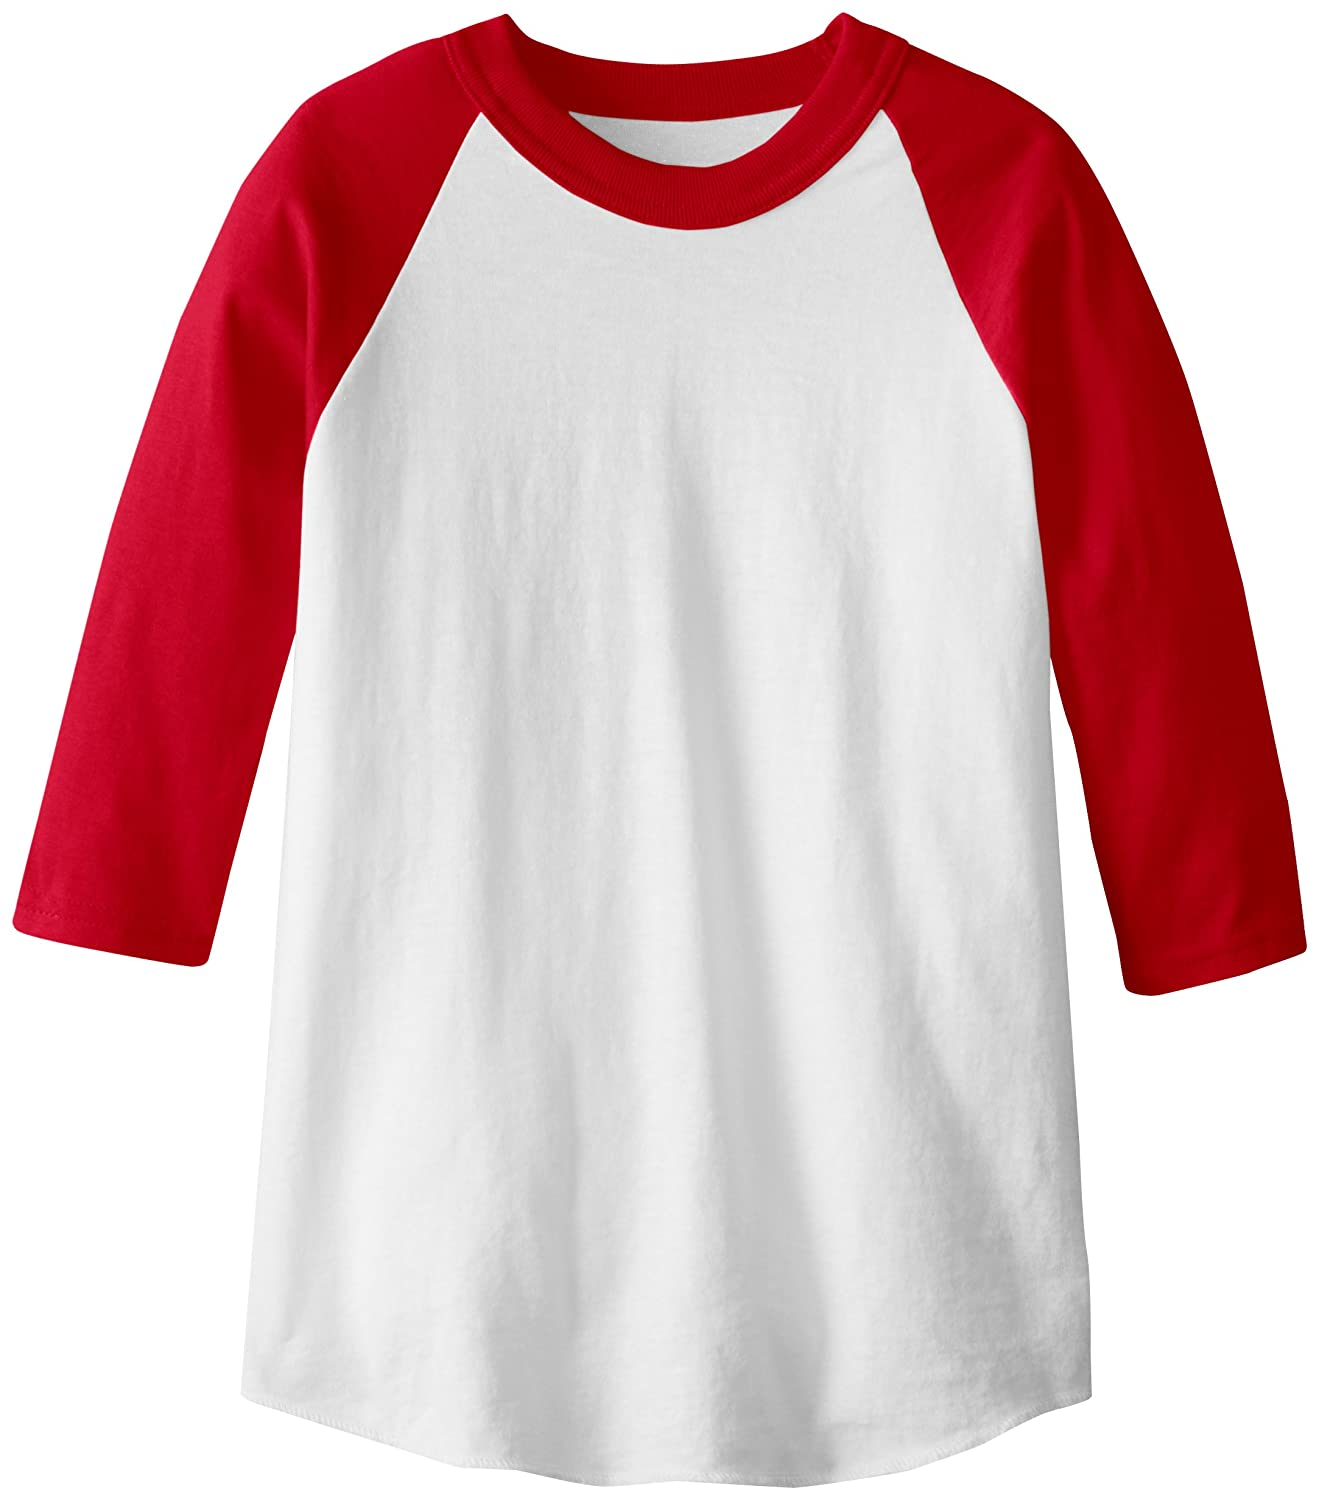 MJ Soffe Kid's 3/4 Sleeve Baseball Jersey